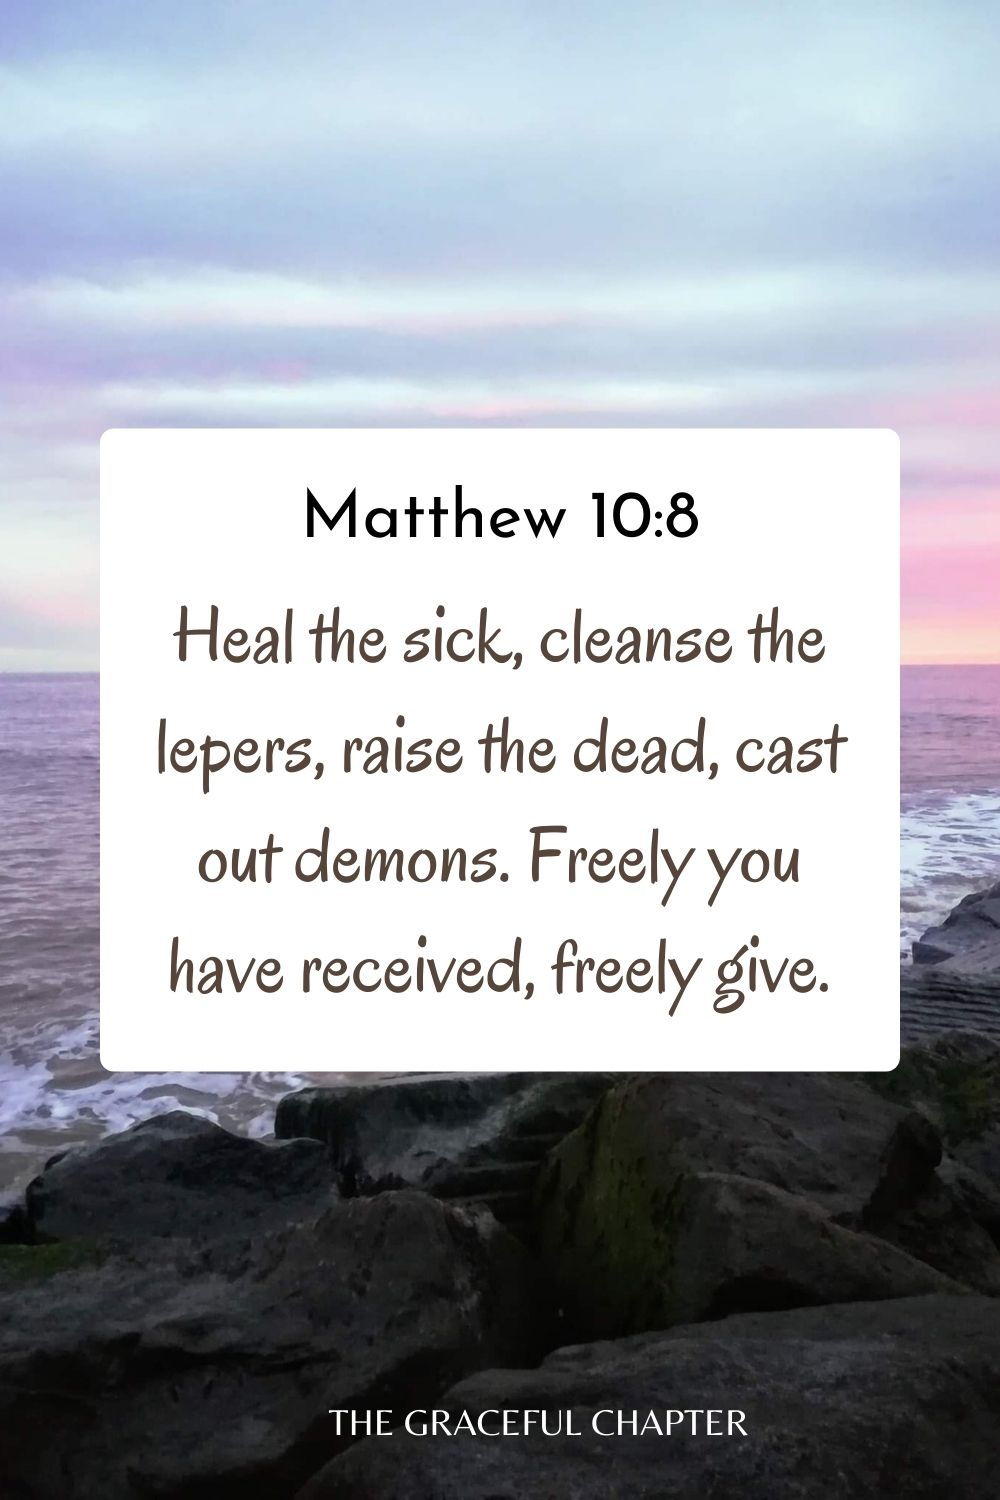 Heal the sick, cleanse the lepers, raise the dead, cast out demons. Freely you have received, freely give. Matthew 10:8